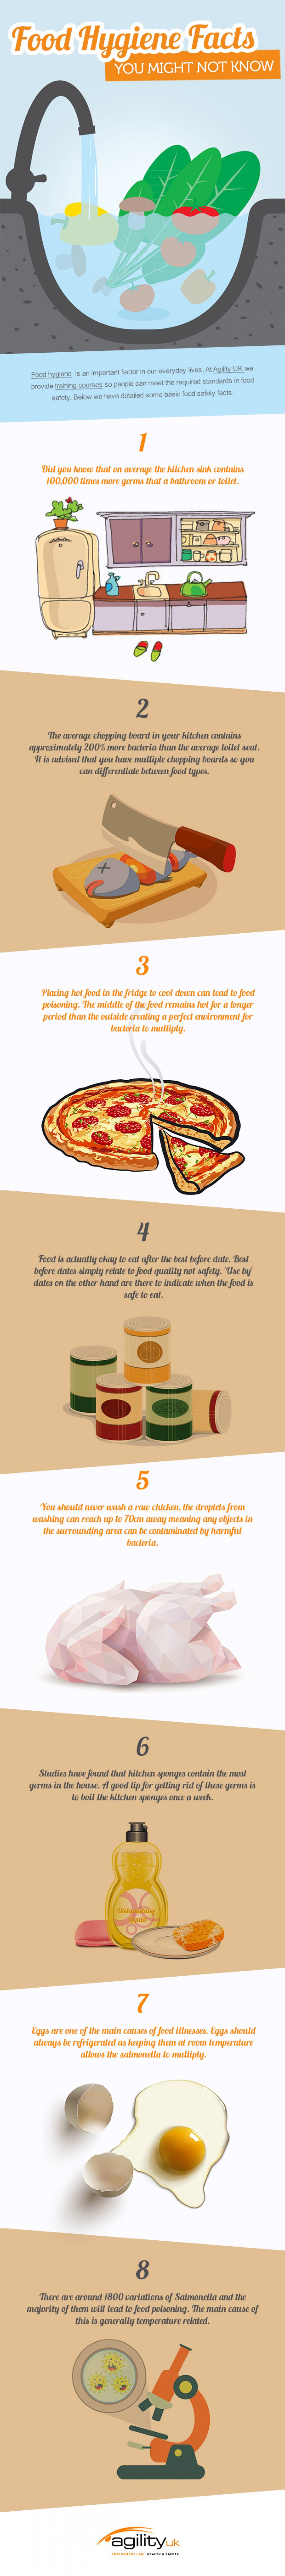 8 Little Known Facts About Food Hygiene And Safety Infographic Hygienic Food Food Infographic Food Tech